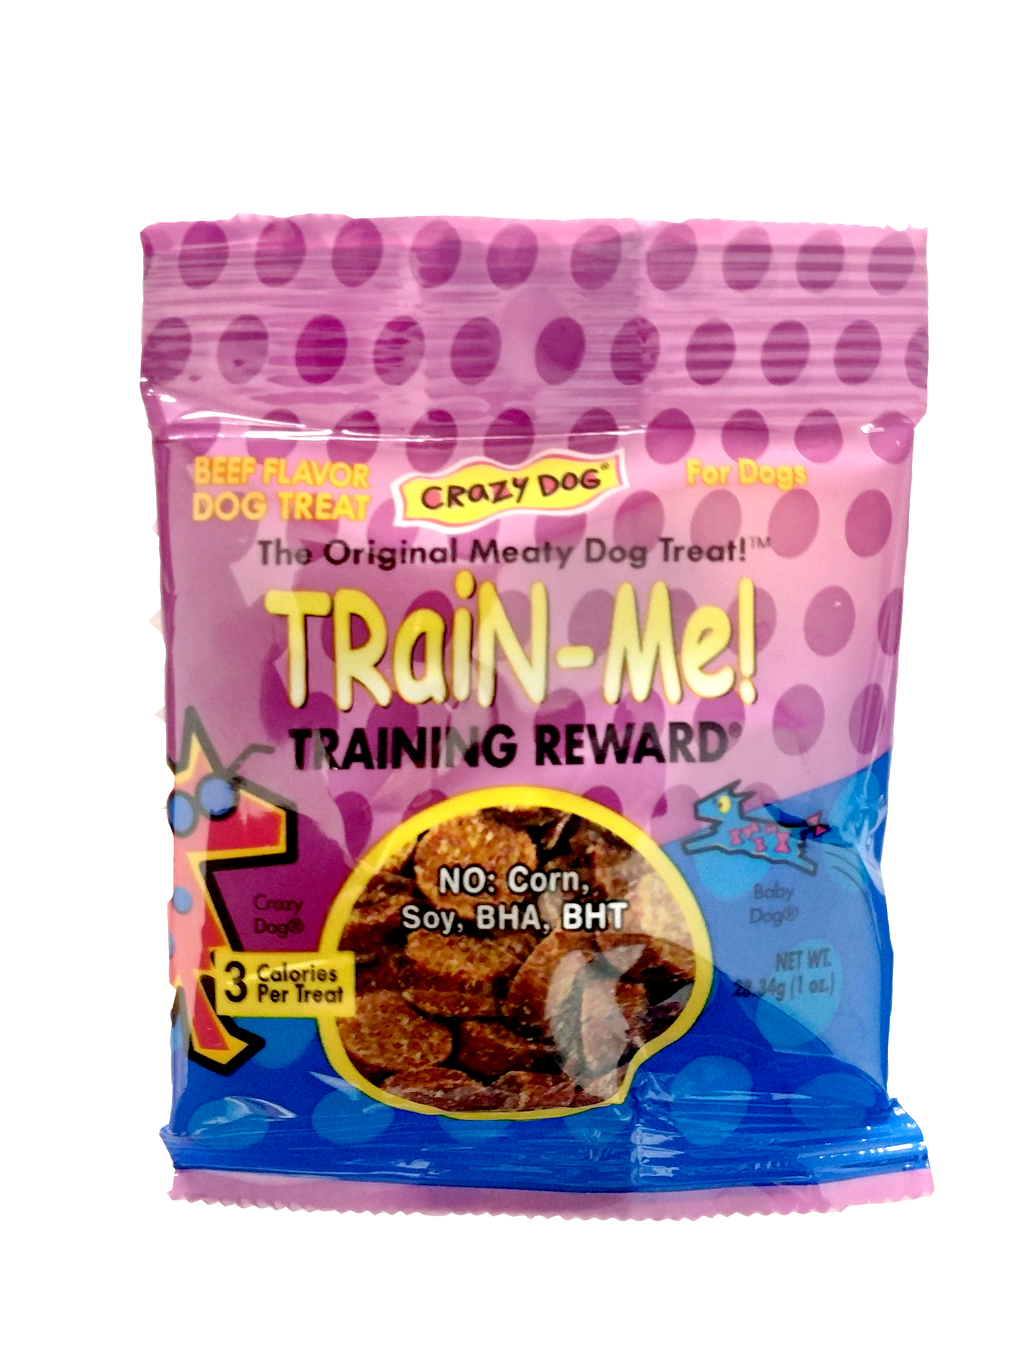 Crazy Dog Train-Me Training Rewards For Dogs, Beef, 1 OZ., Beef Flavor